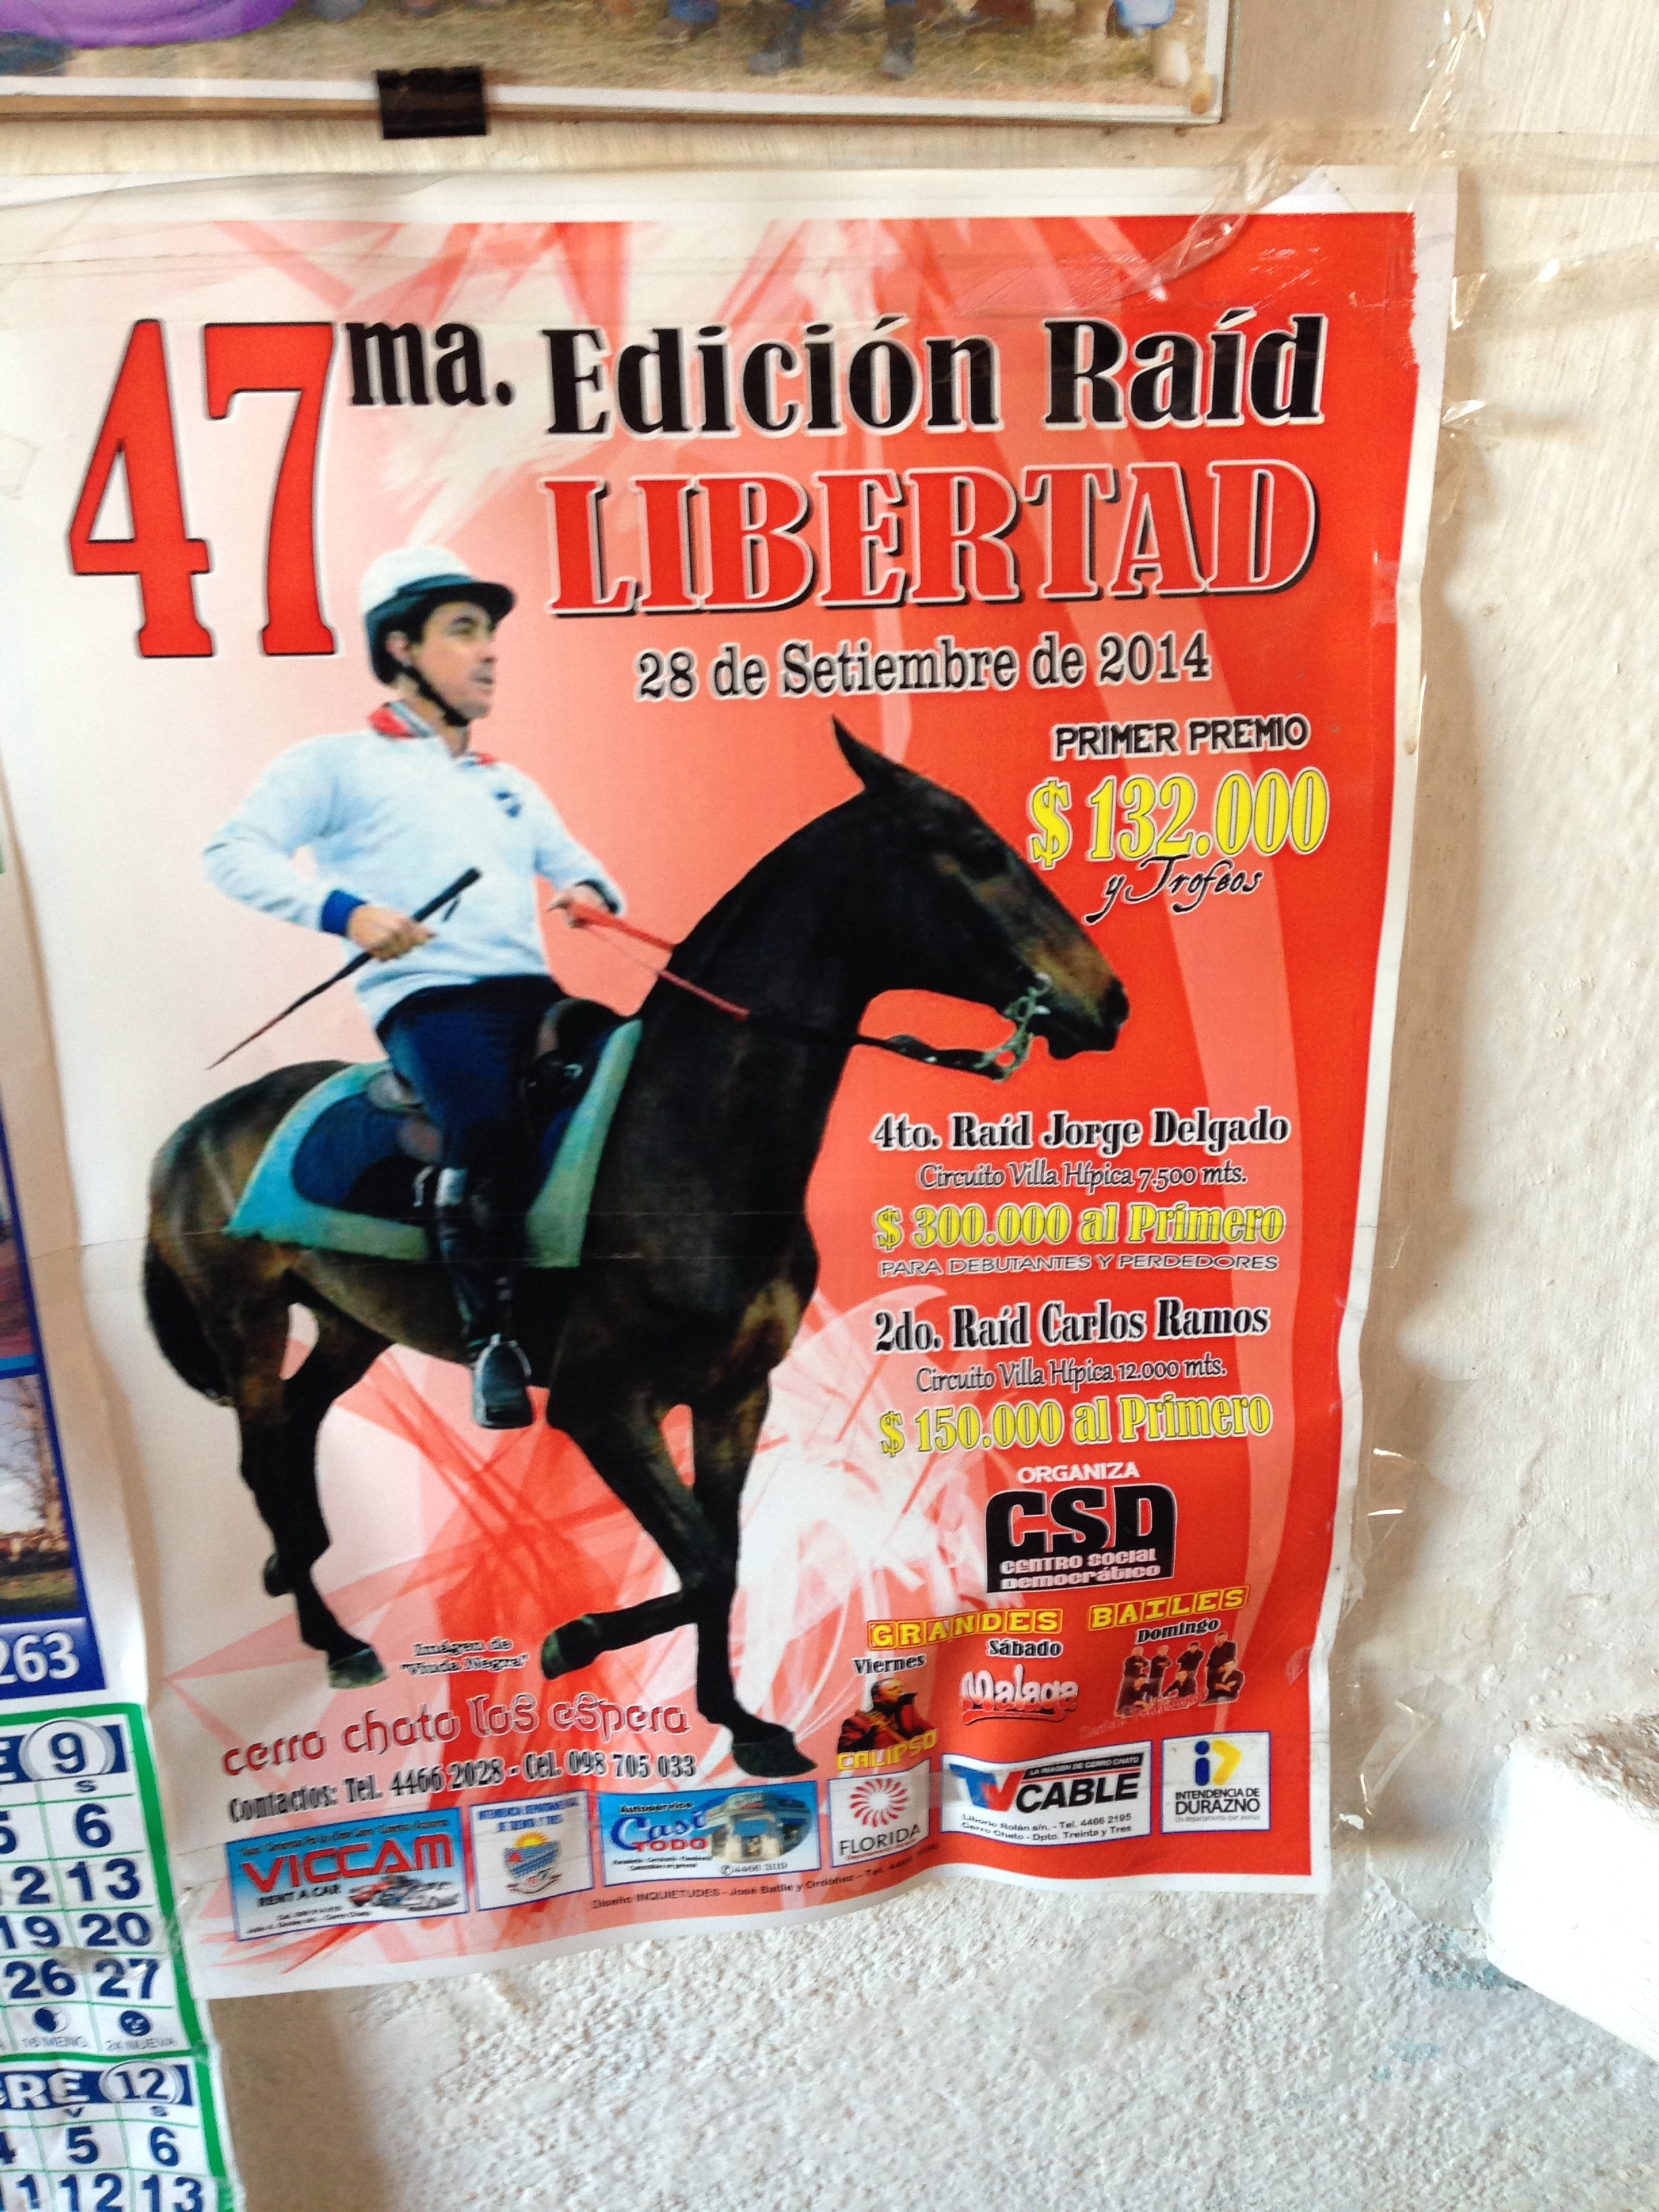 A poster for the September 28th raid in 2014.